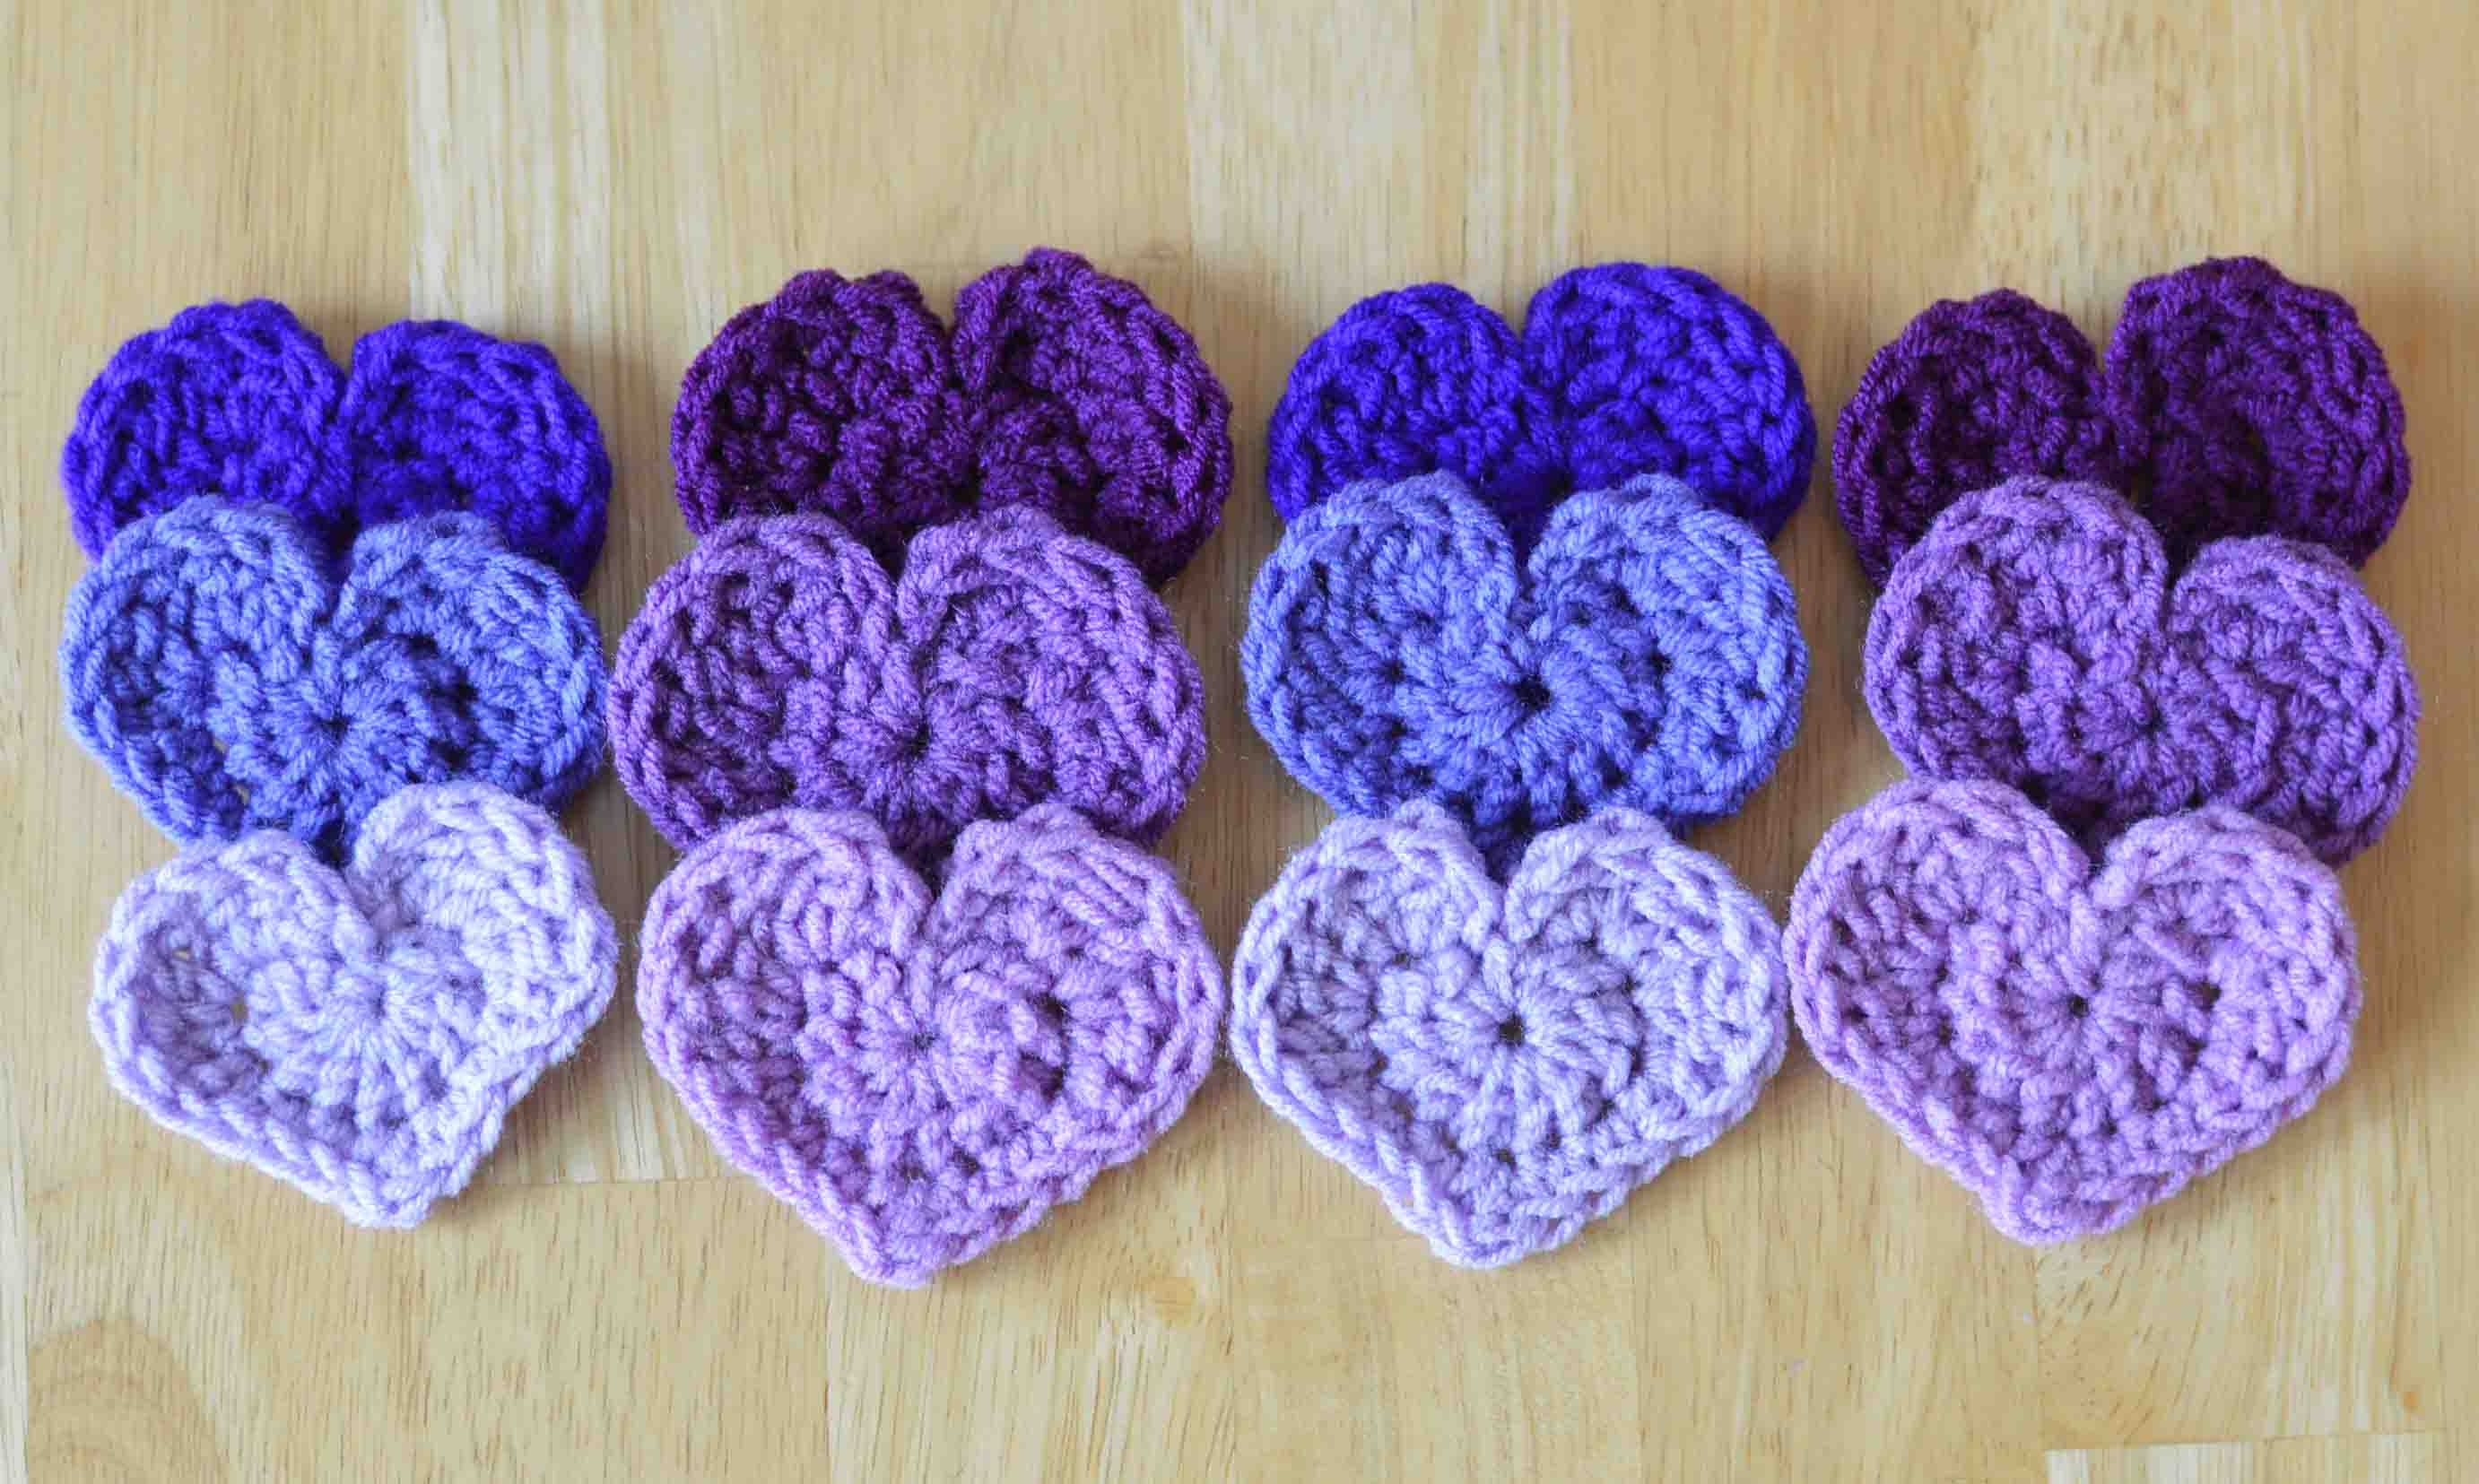 Crochet Patterns Hearts : And by the way, this pattern is a great stashbuster!